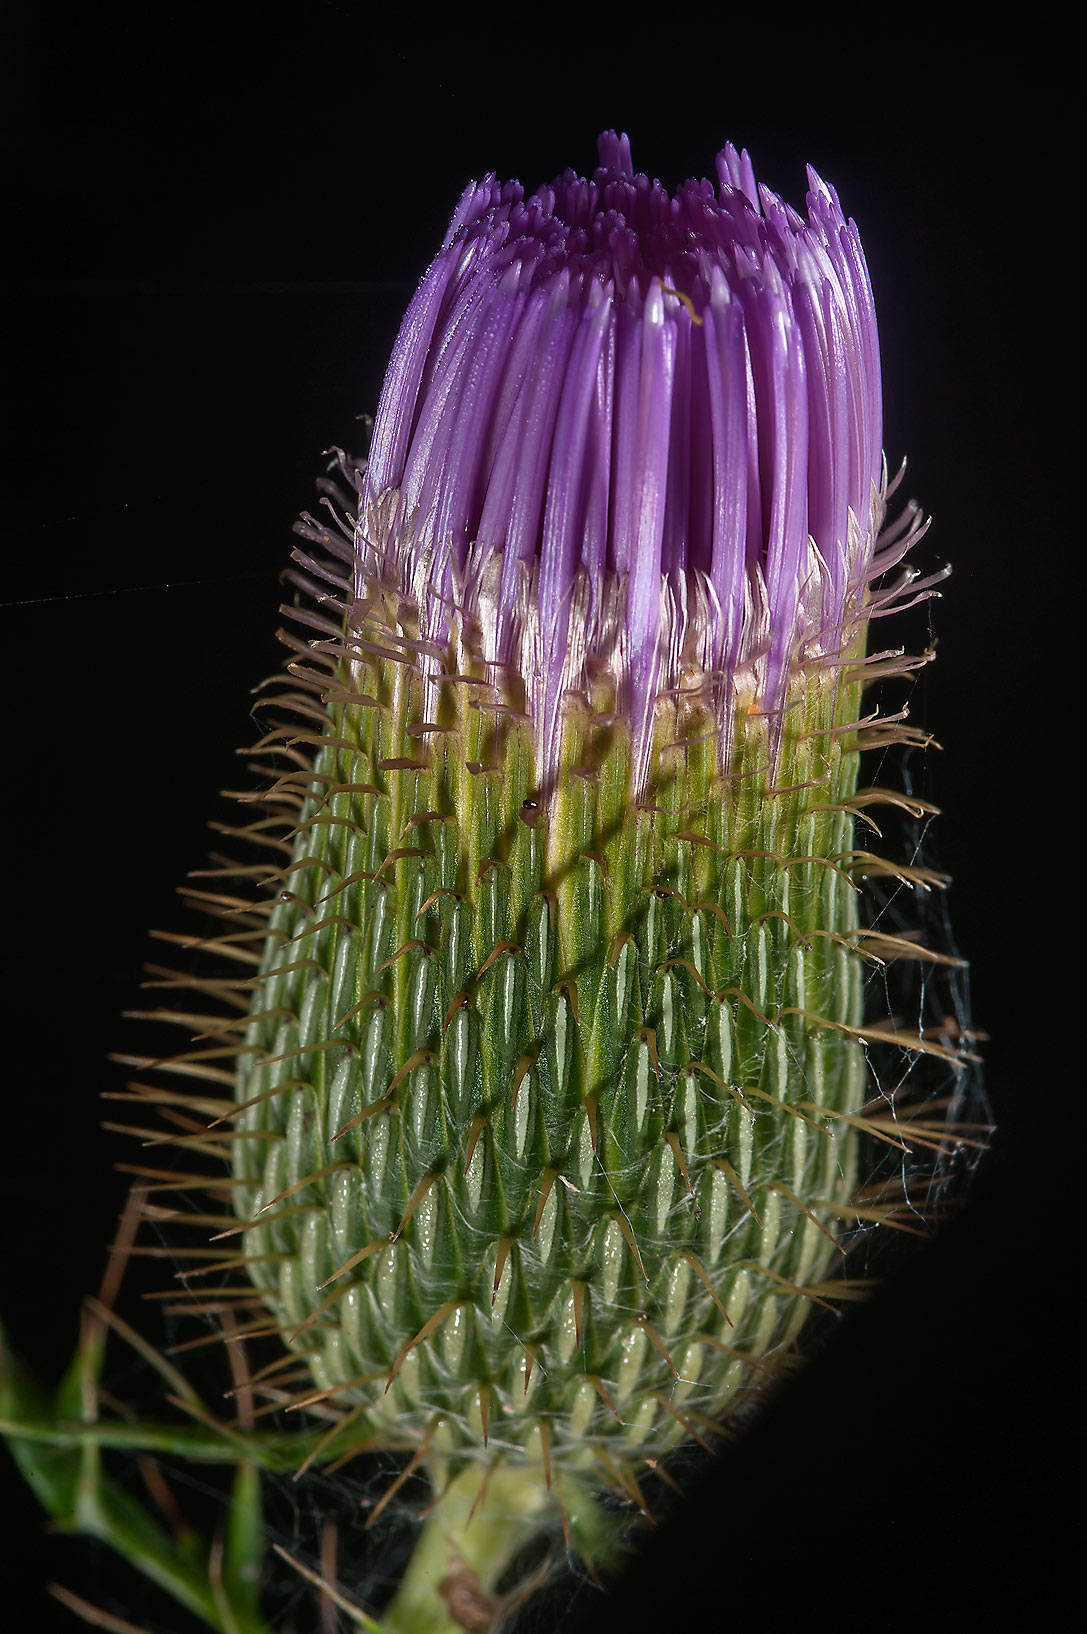 Flower bud of summer thistle in Lick Creek Park. College Station, Texas